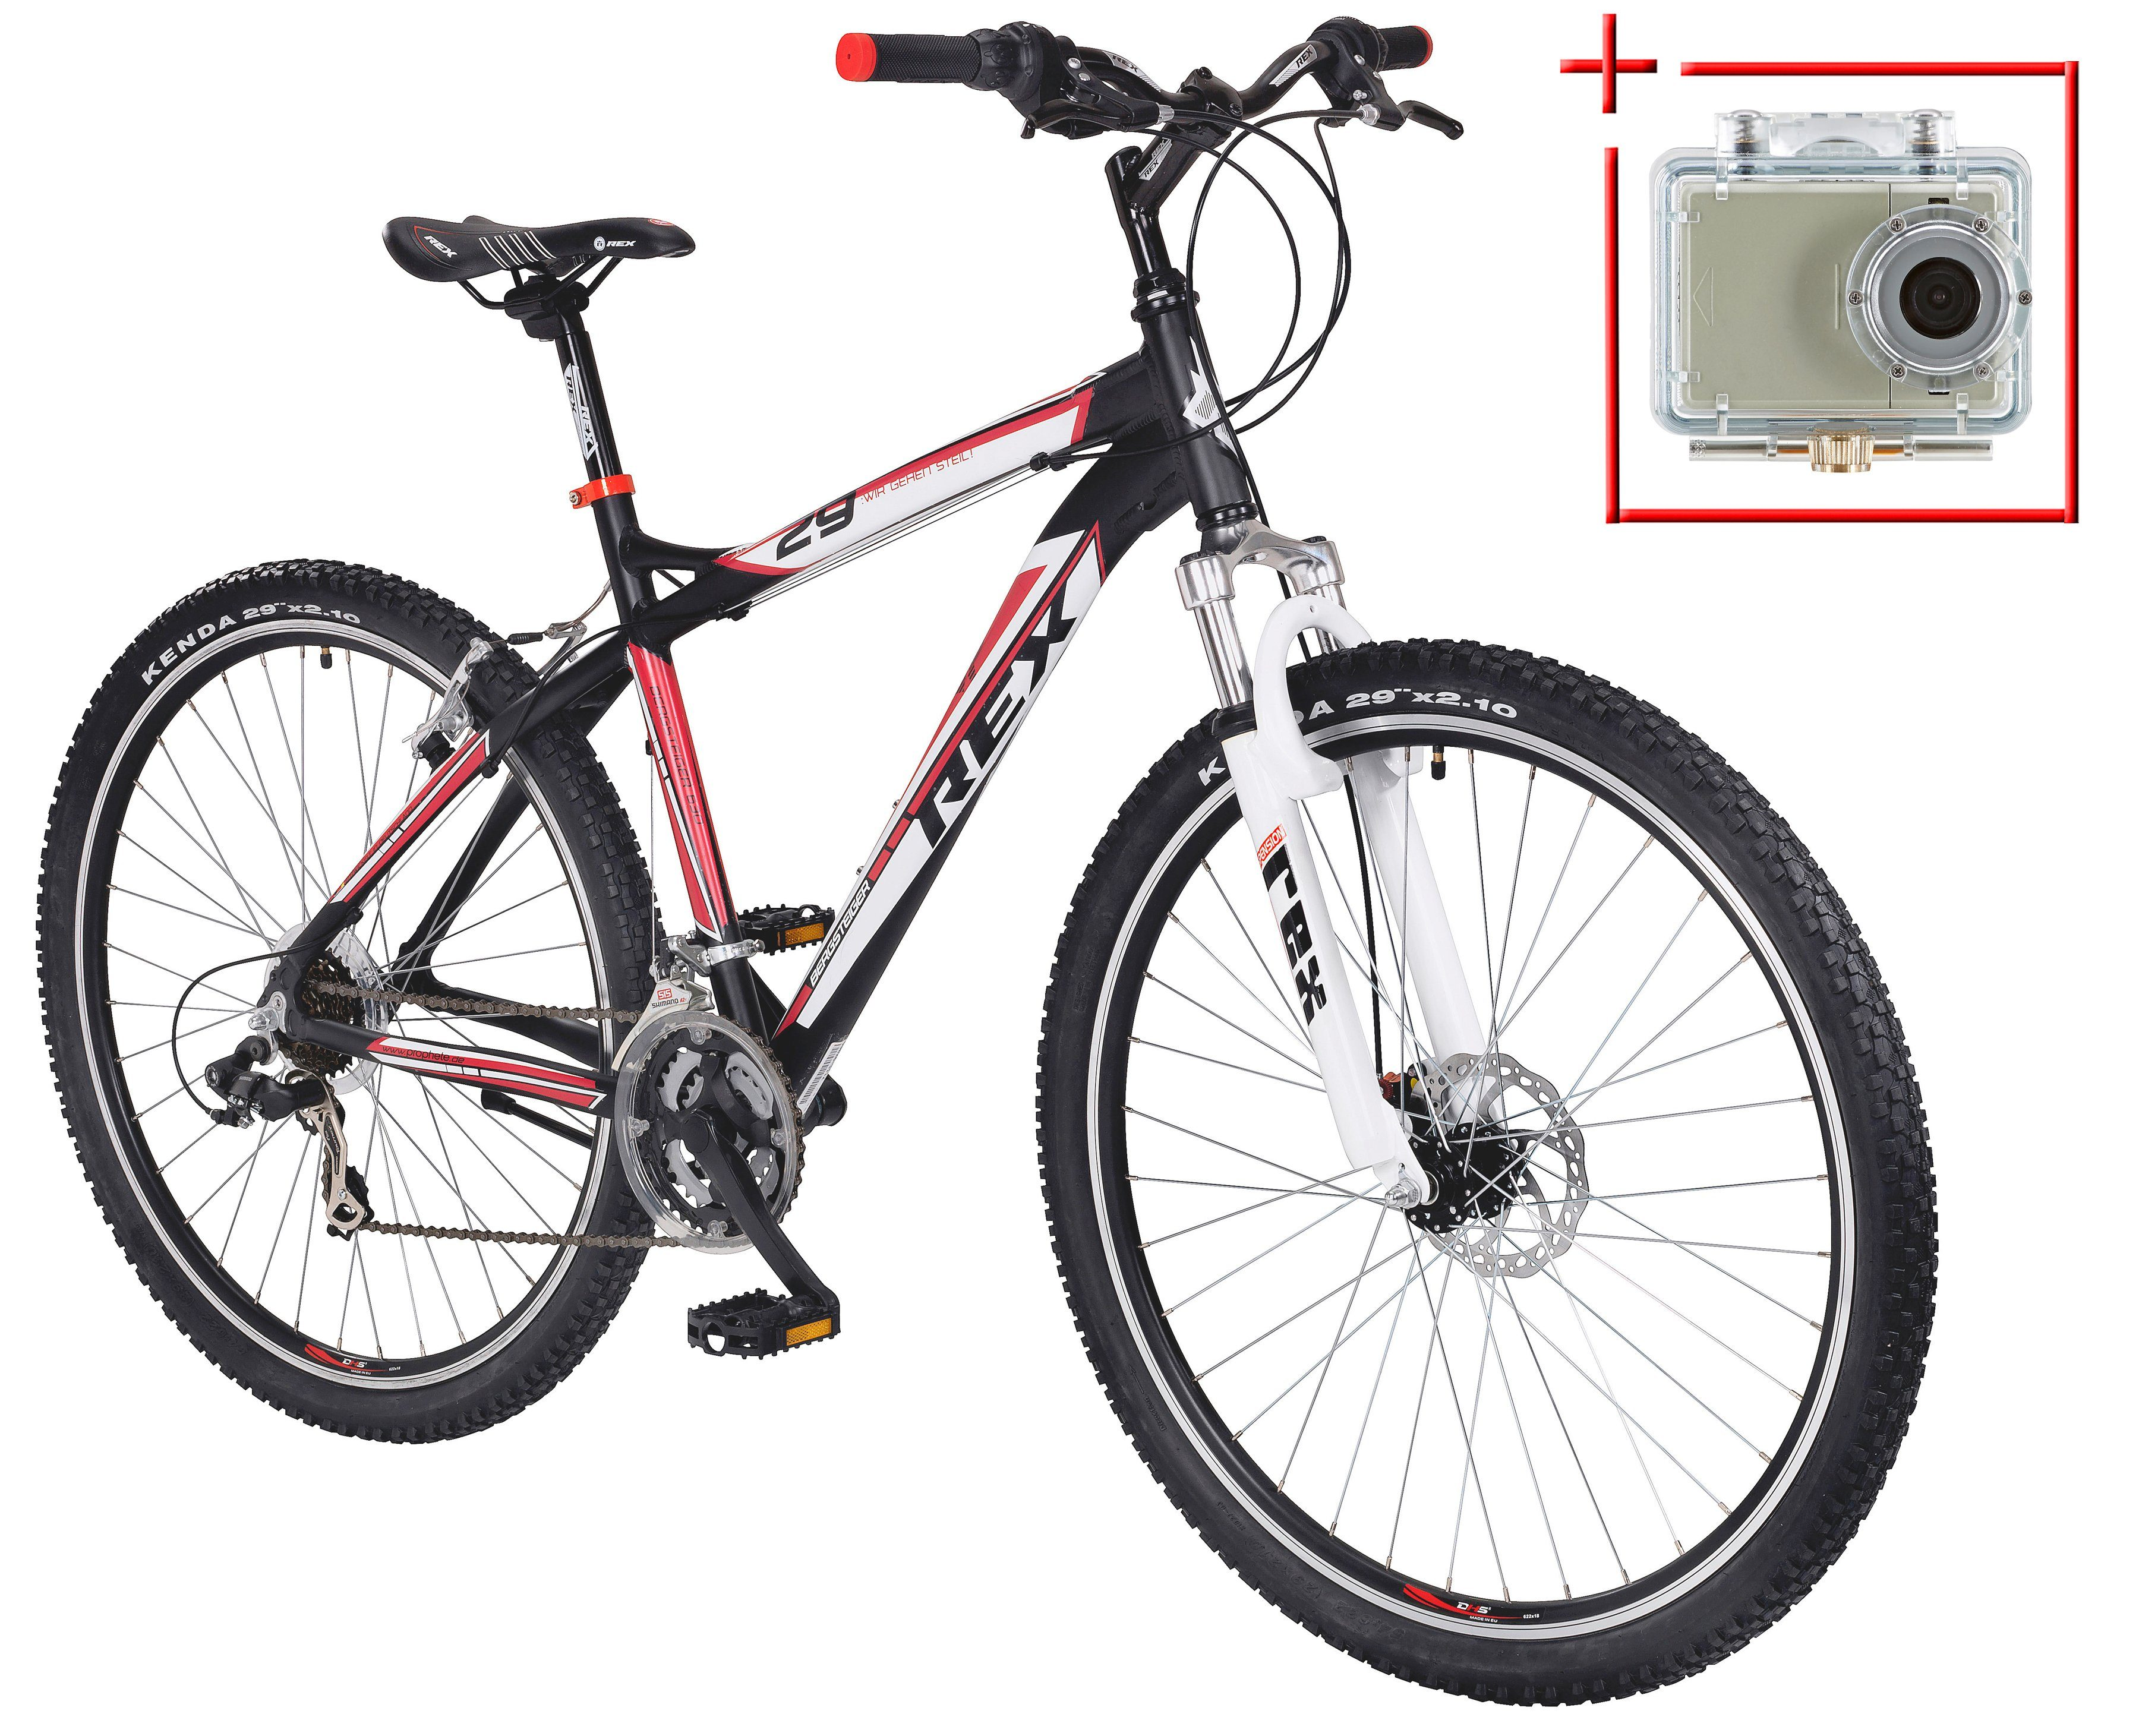 Prophete Mountainbike »Bergsteiger 630«, 29 Zoll, SHIMANO 21 Gang, Inkl. Action-Cam